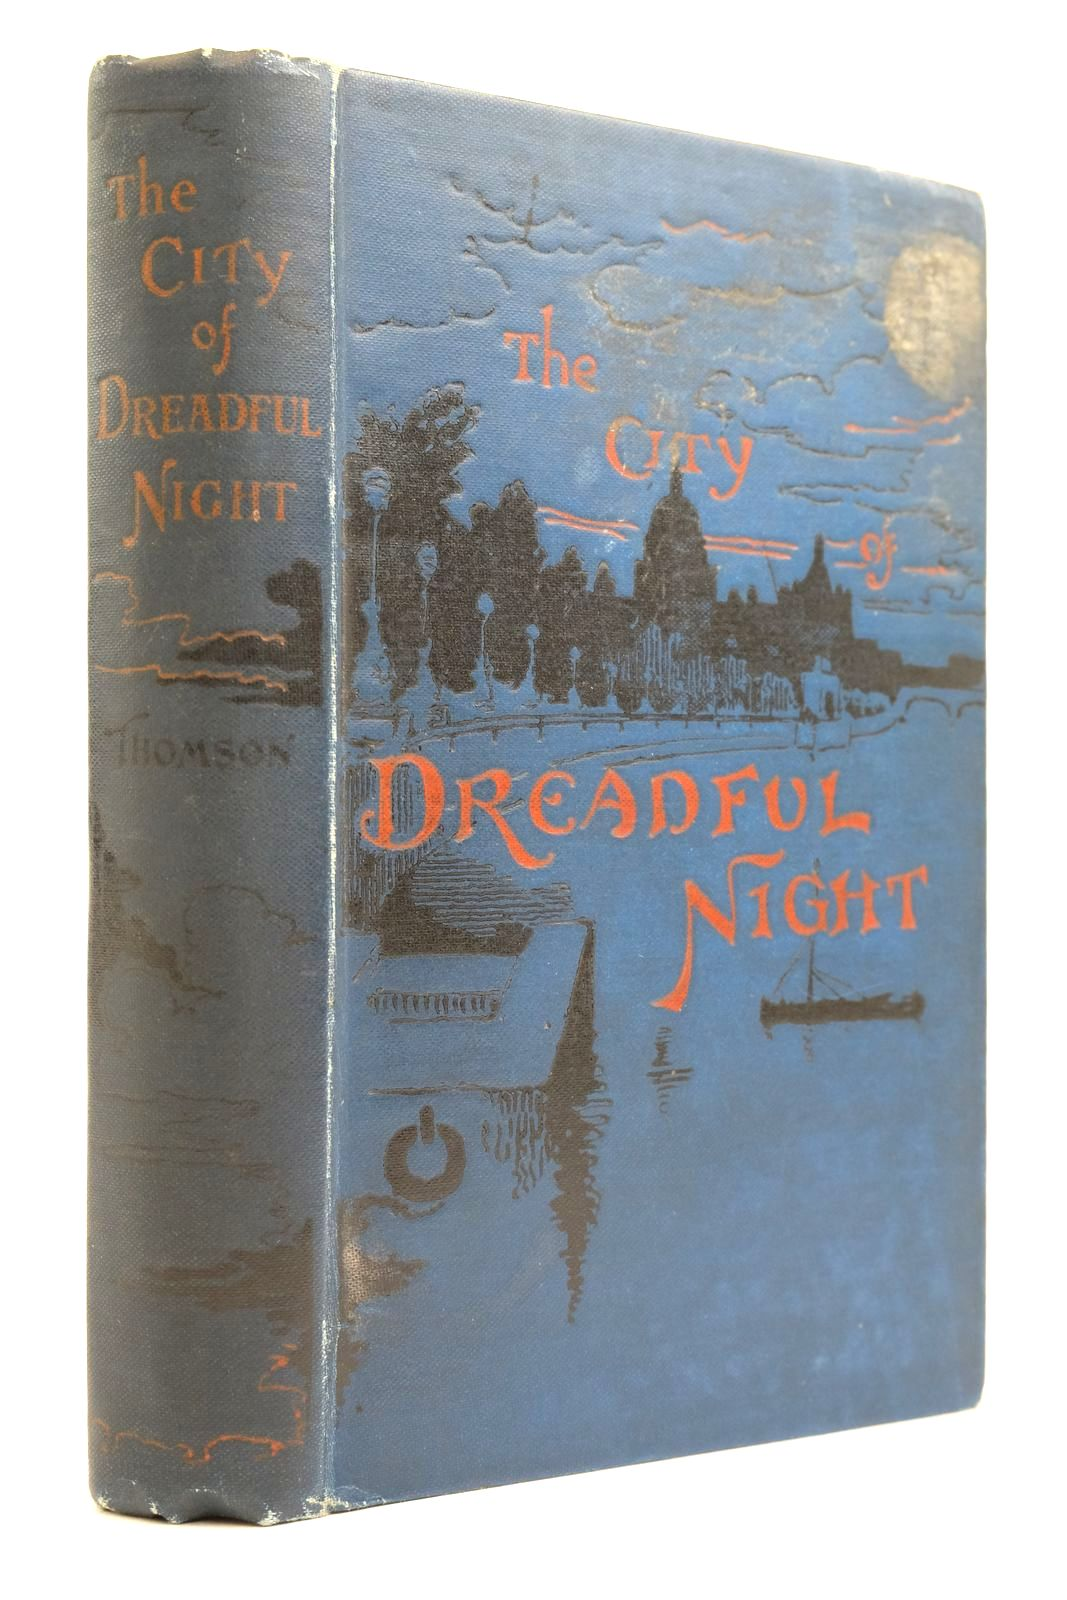 Photo of THE CITY OF DREADFUL NIGHT AND OTHER POEMS written by Thomson, James published by Bertram Dobell (STOCK CODE: 2135288)  for sale by Stella & Rose's Books